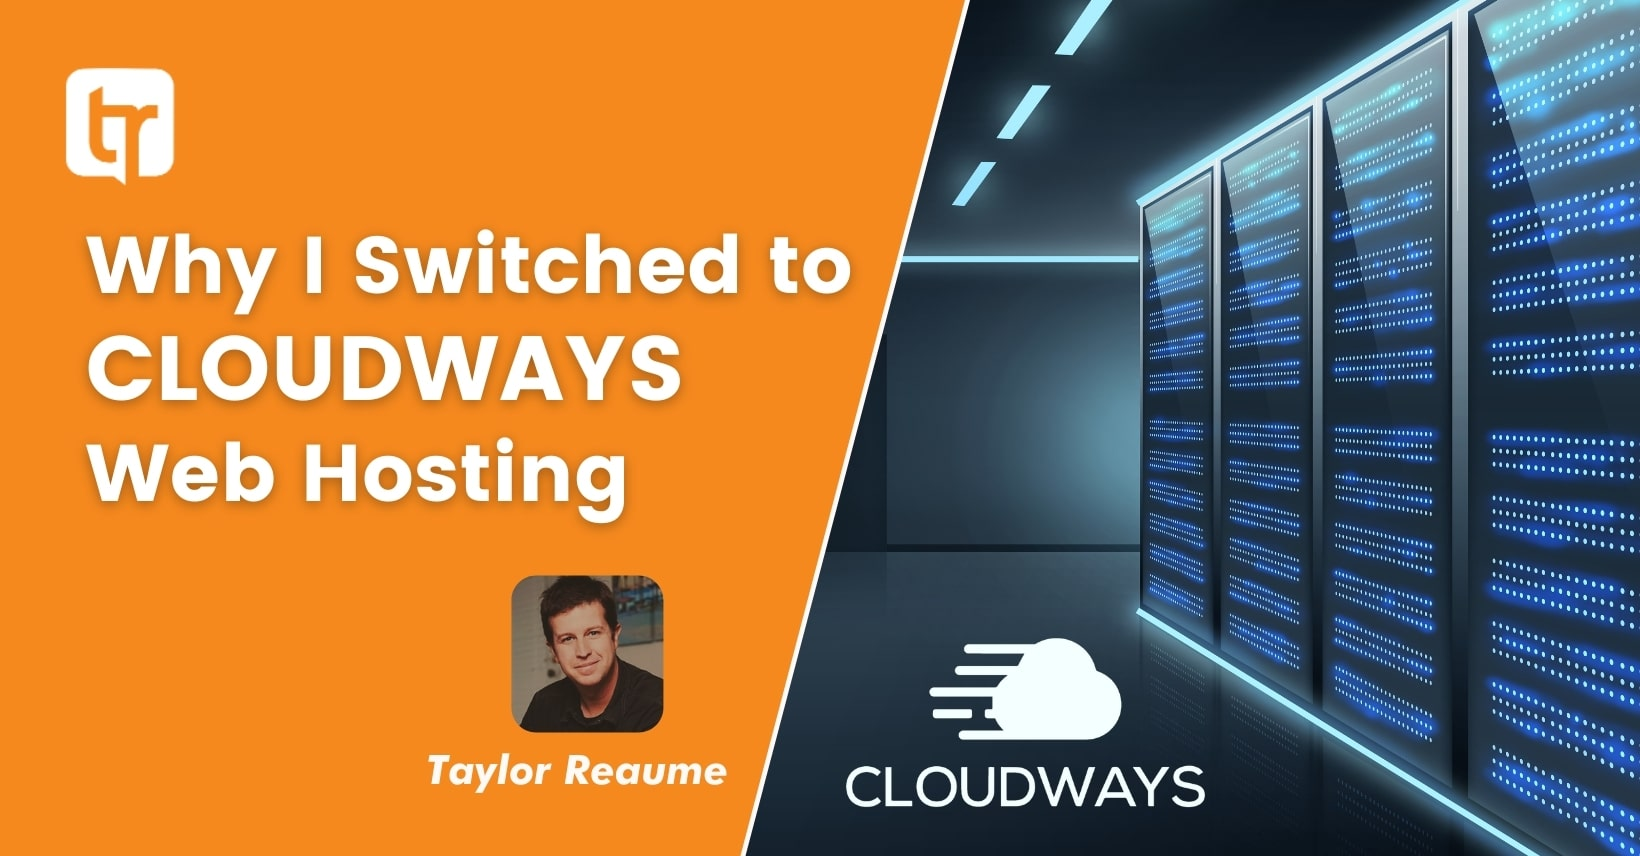 10 Reasons Why Cloudways Web Hosting Is Better Than The Rest